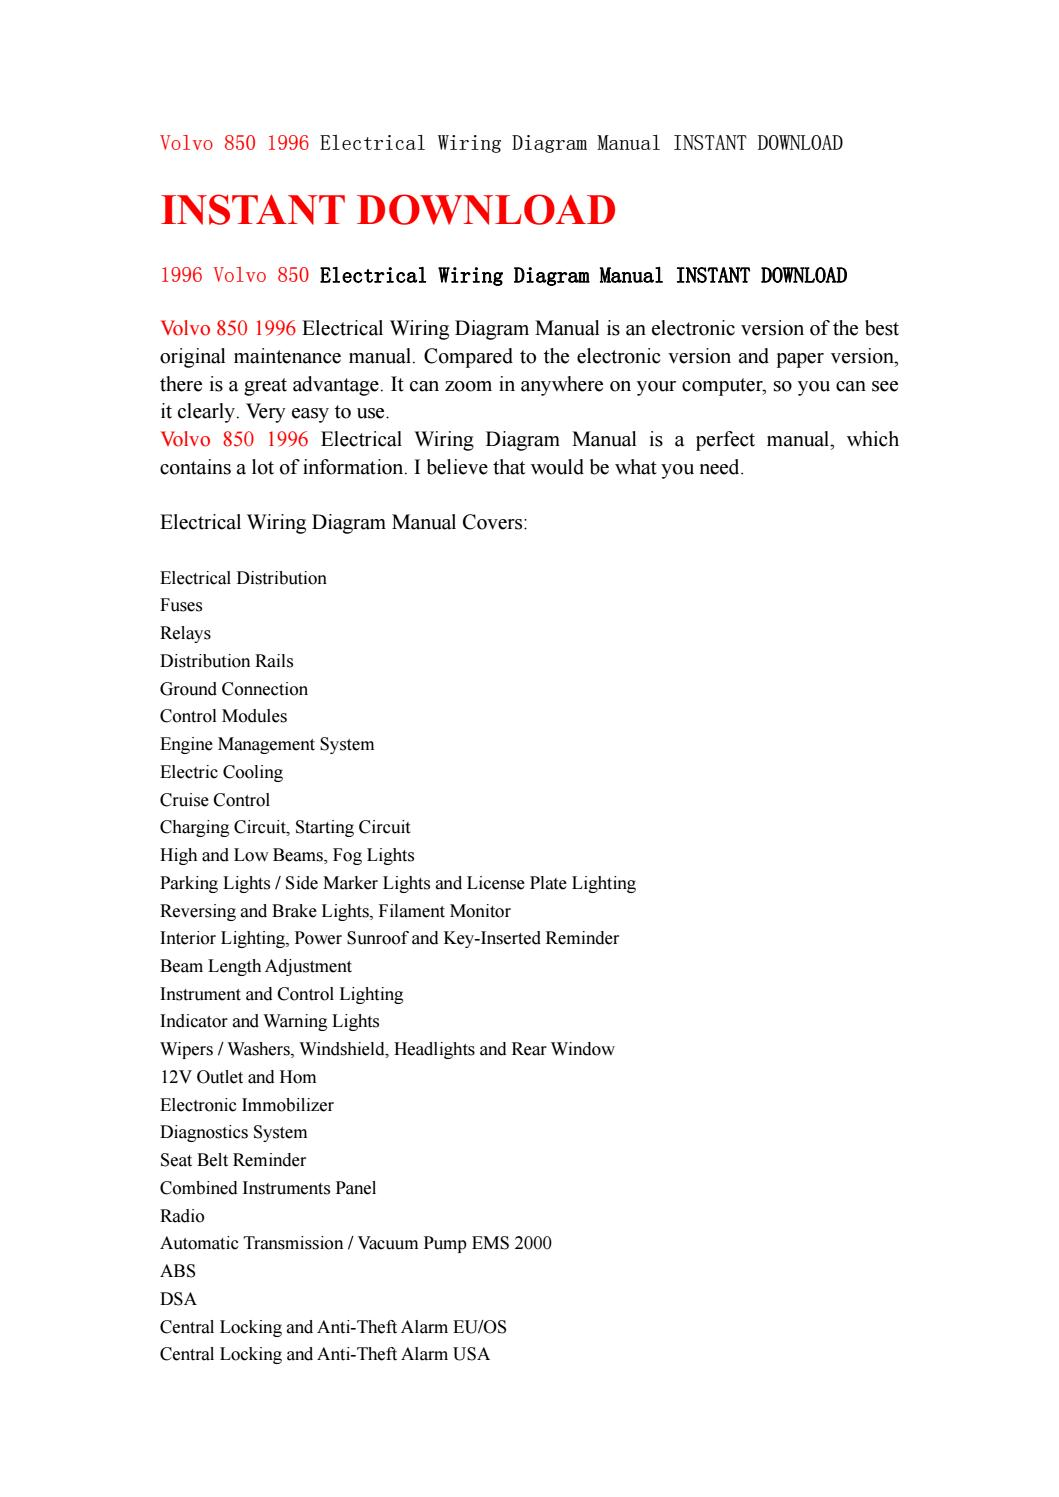 hight resolution of volvo 850 1996 electrical wiring diagram manual instant download by jhsefn7y6d issuu